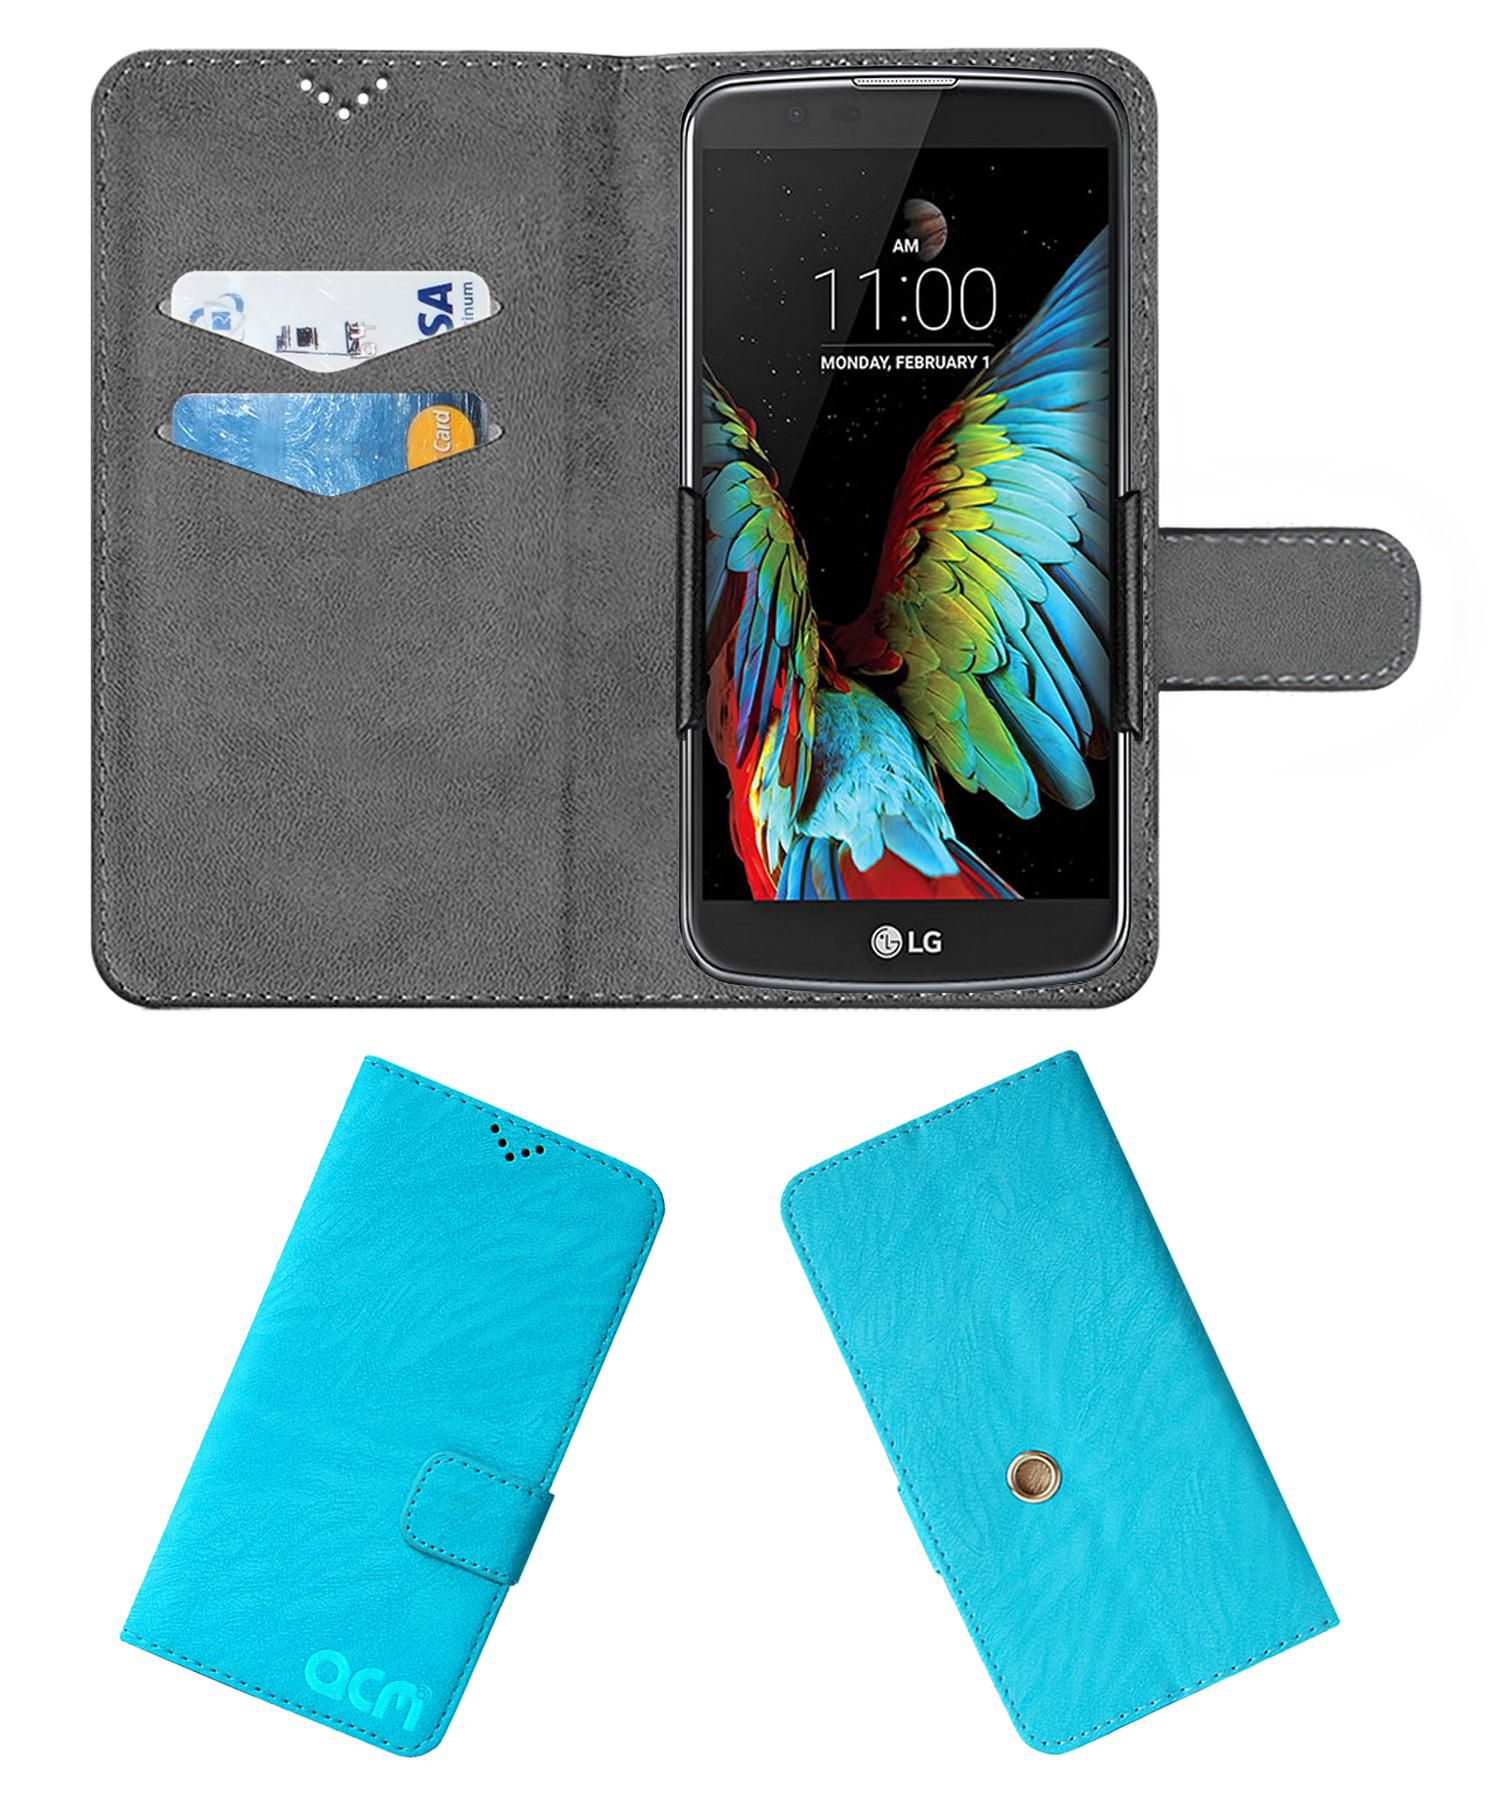 LG K10 4G Flip Cover by ACM - Blue Clip holder to hold your mobile securely